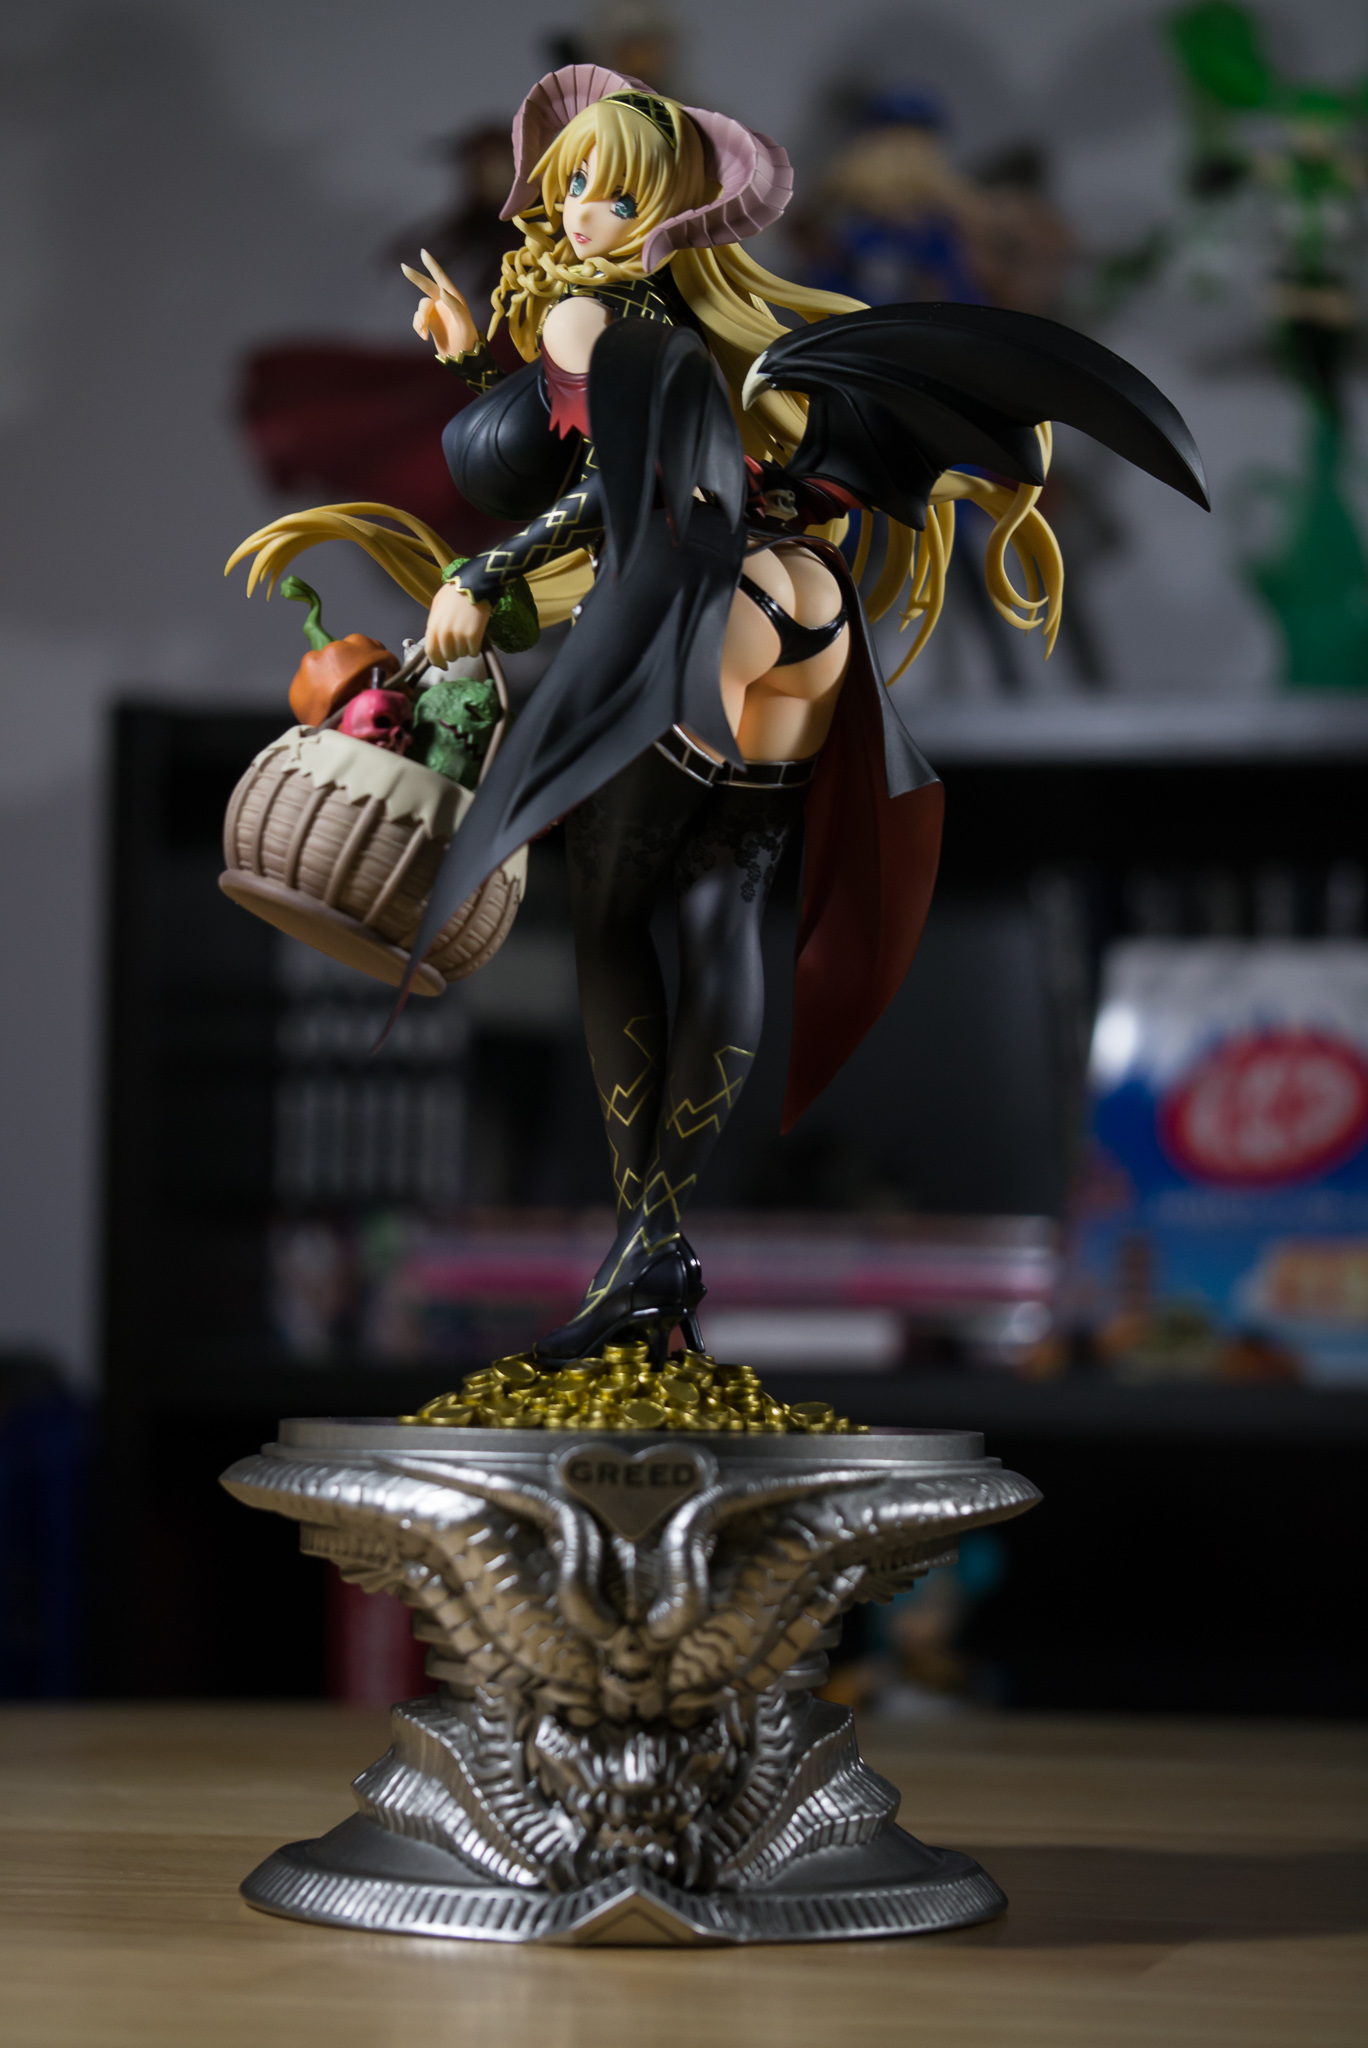 Hobby Japan - The Seven Deadly Sins - Mammon - Greed